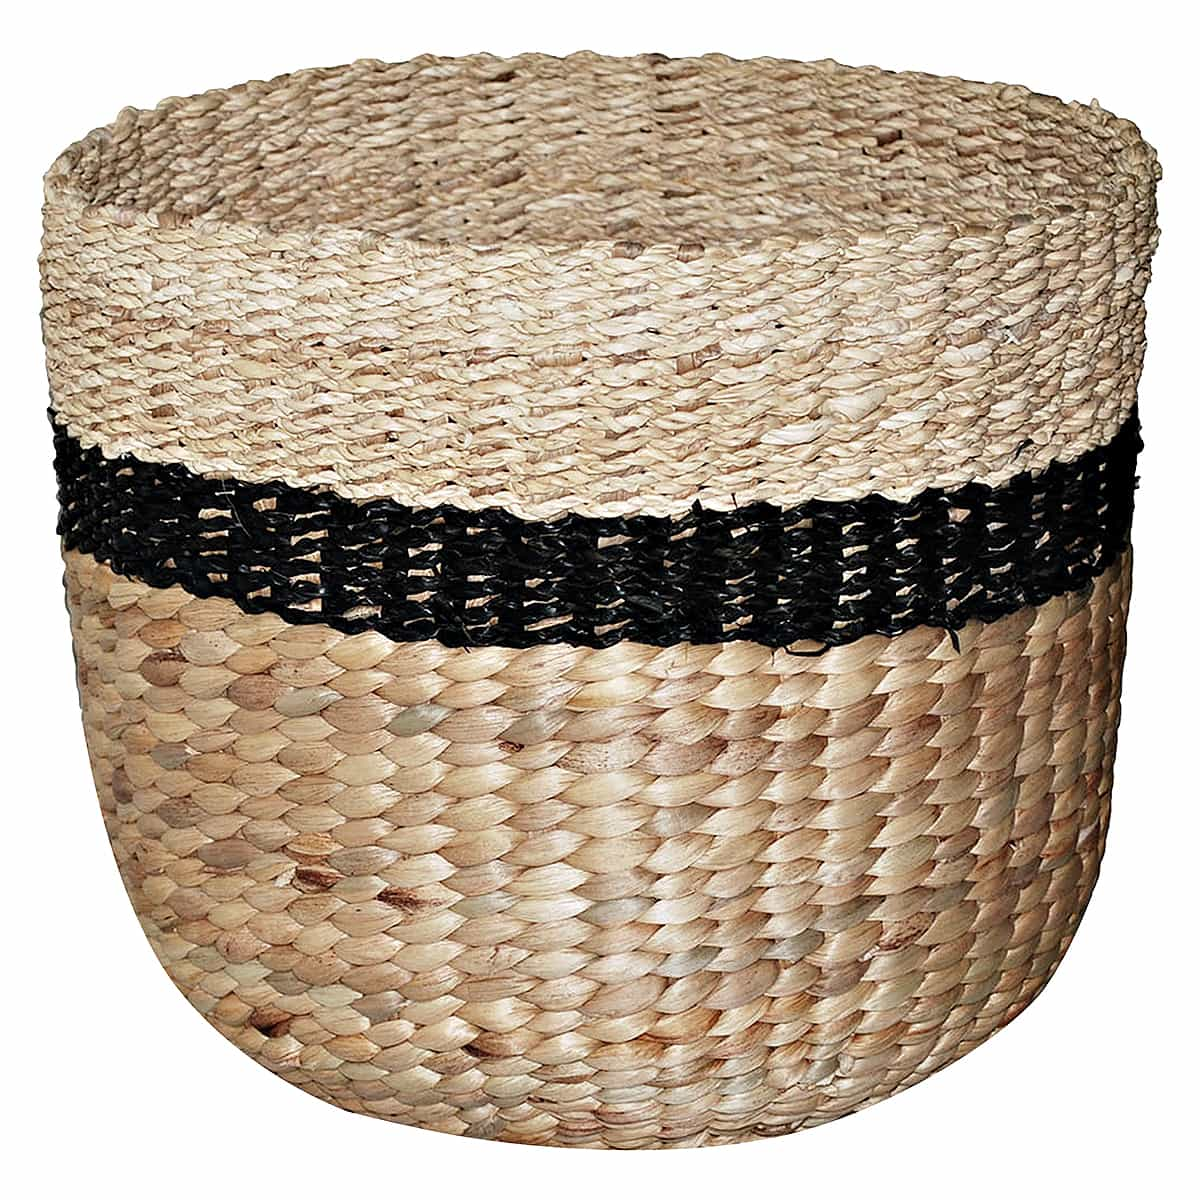 Threshold woven basket